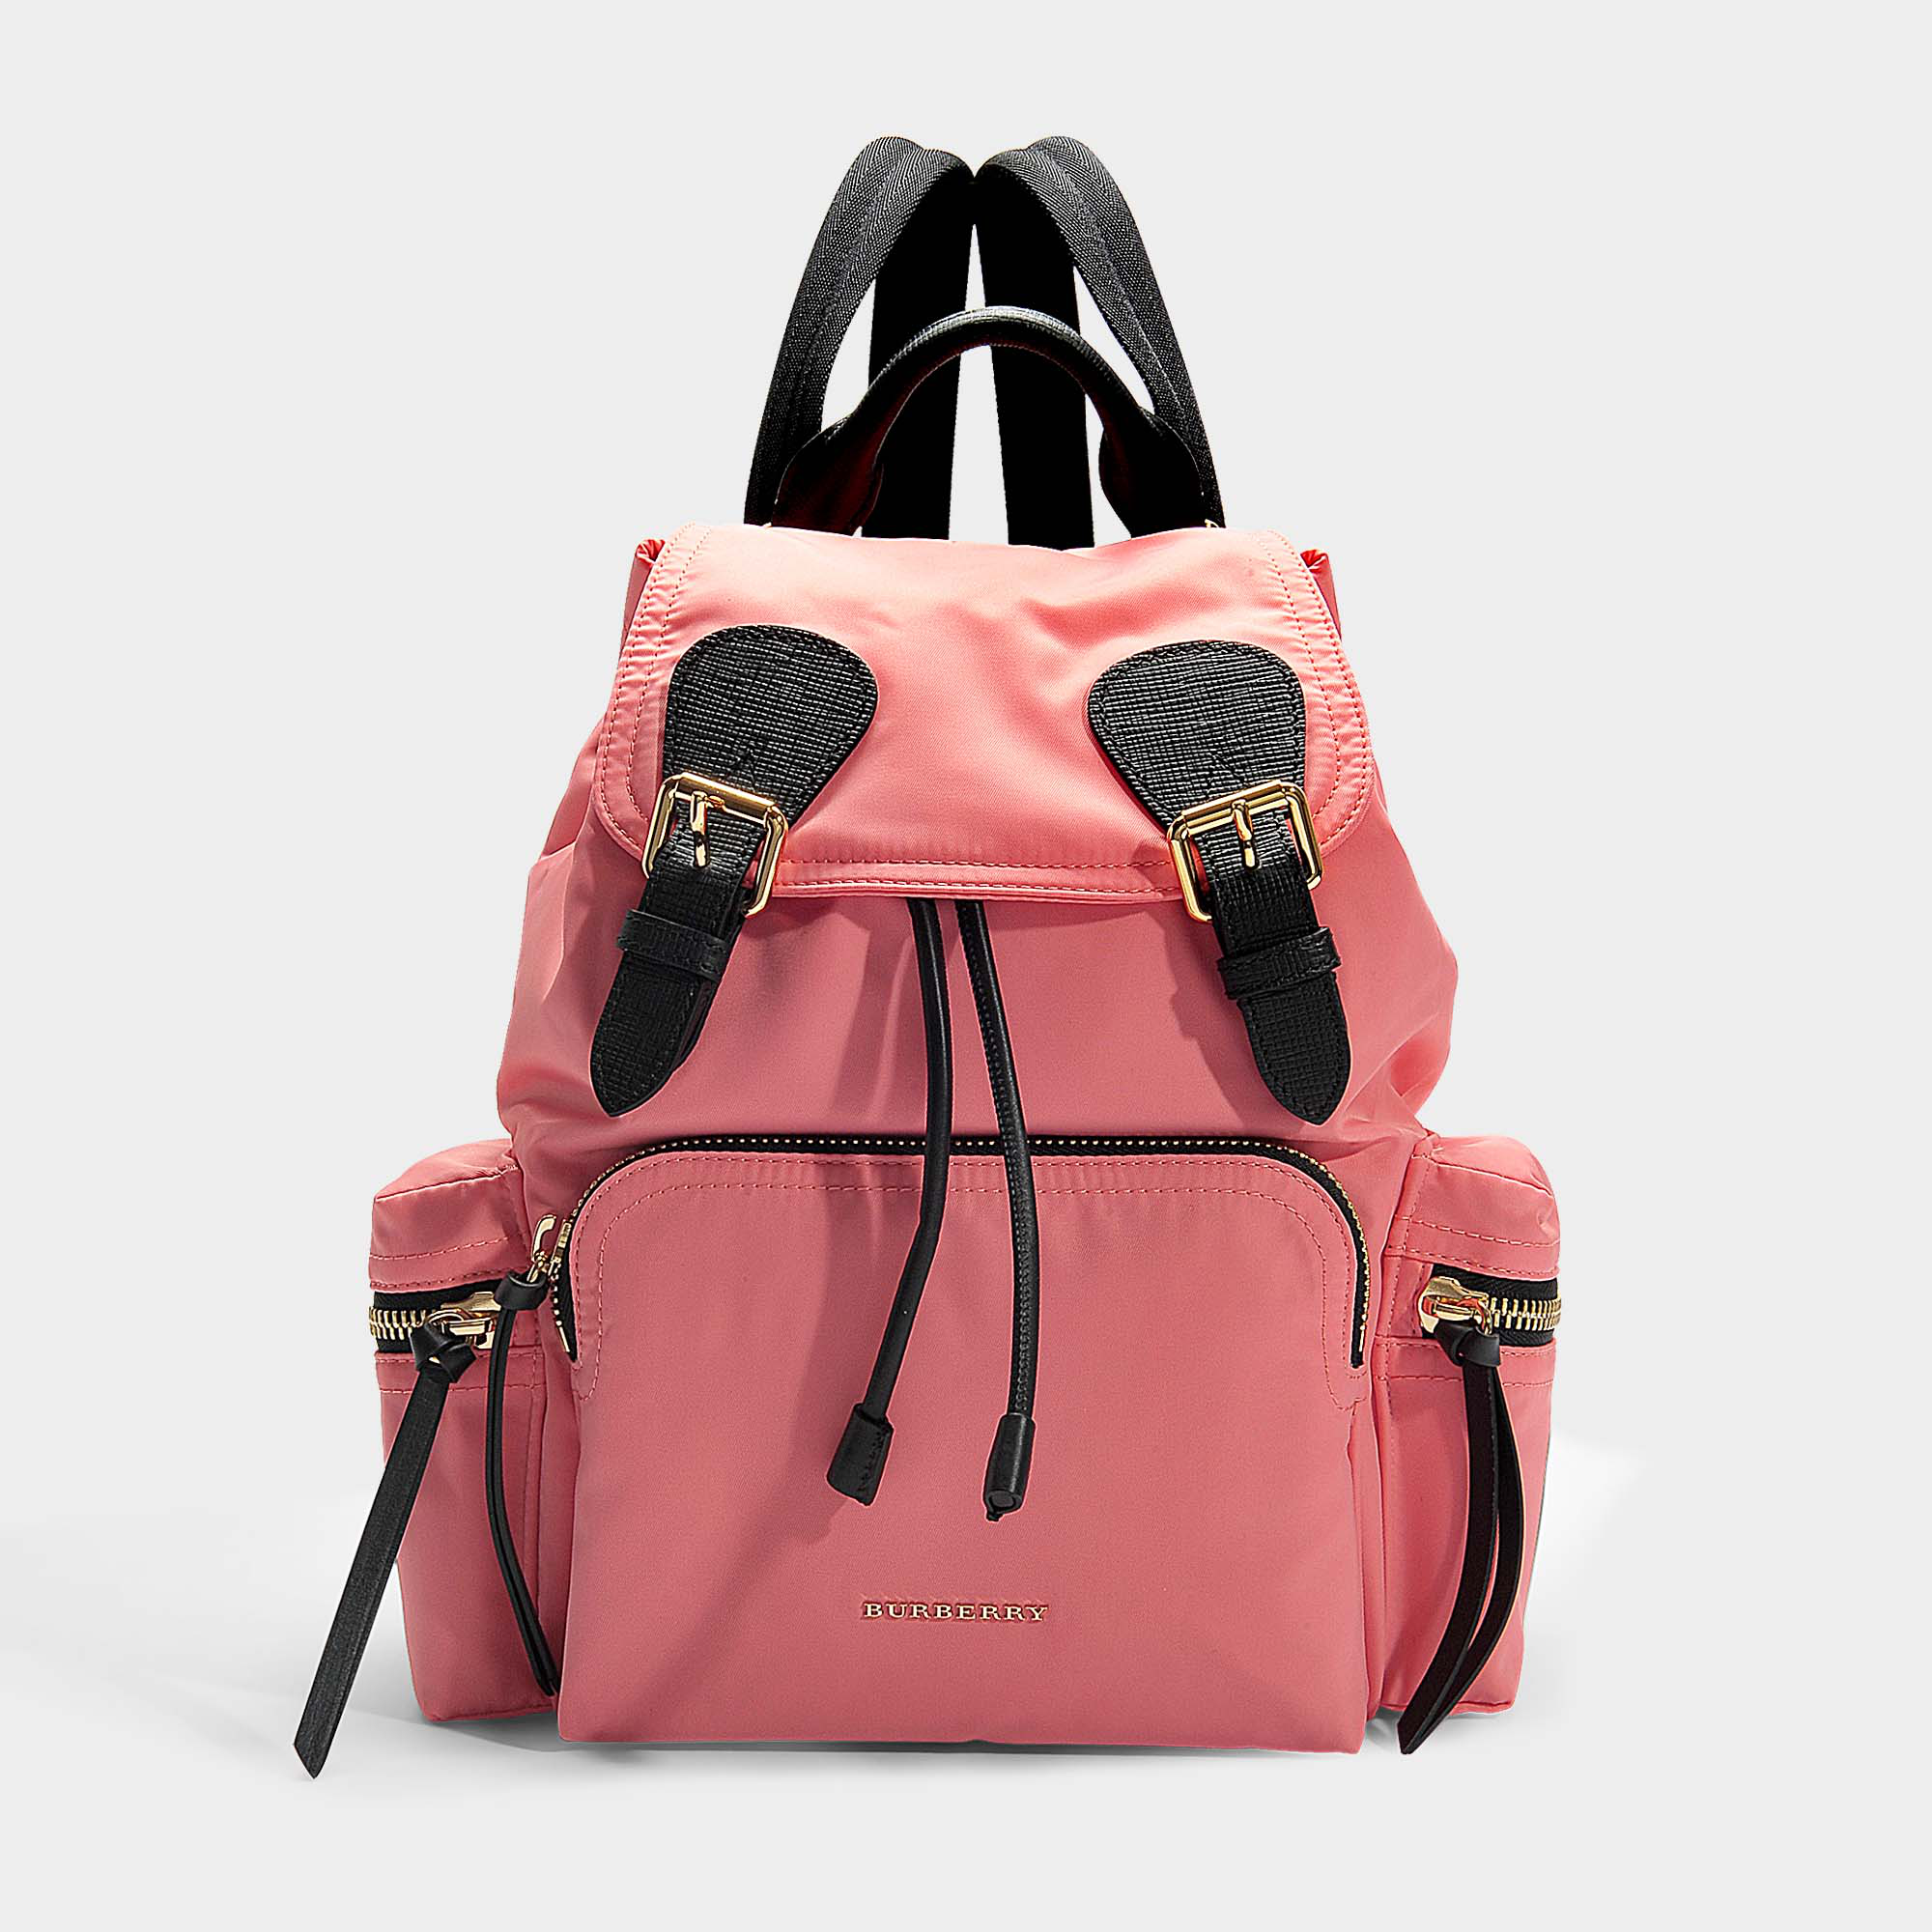 3ac38770f360 Burberry The Medium Rucksack In Technical Nylon And Leather In Pink ...